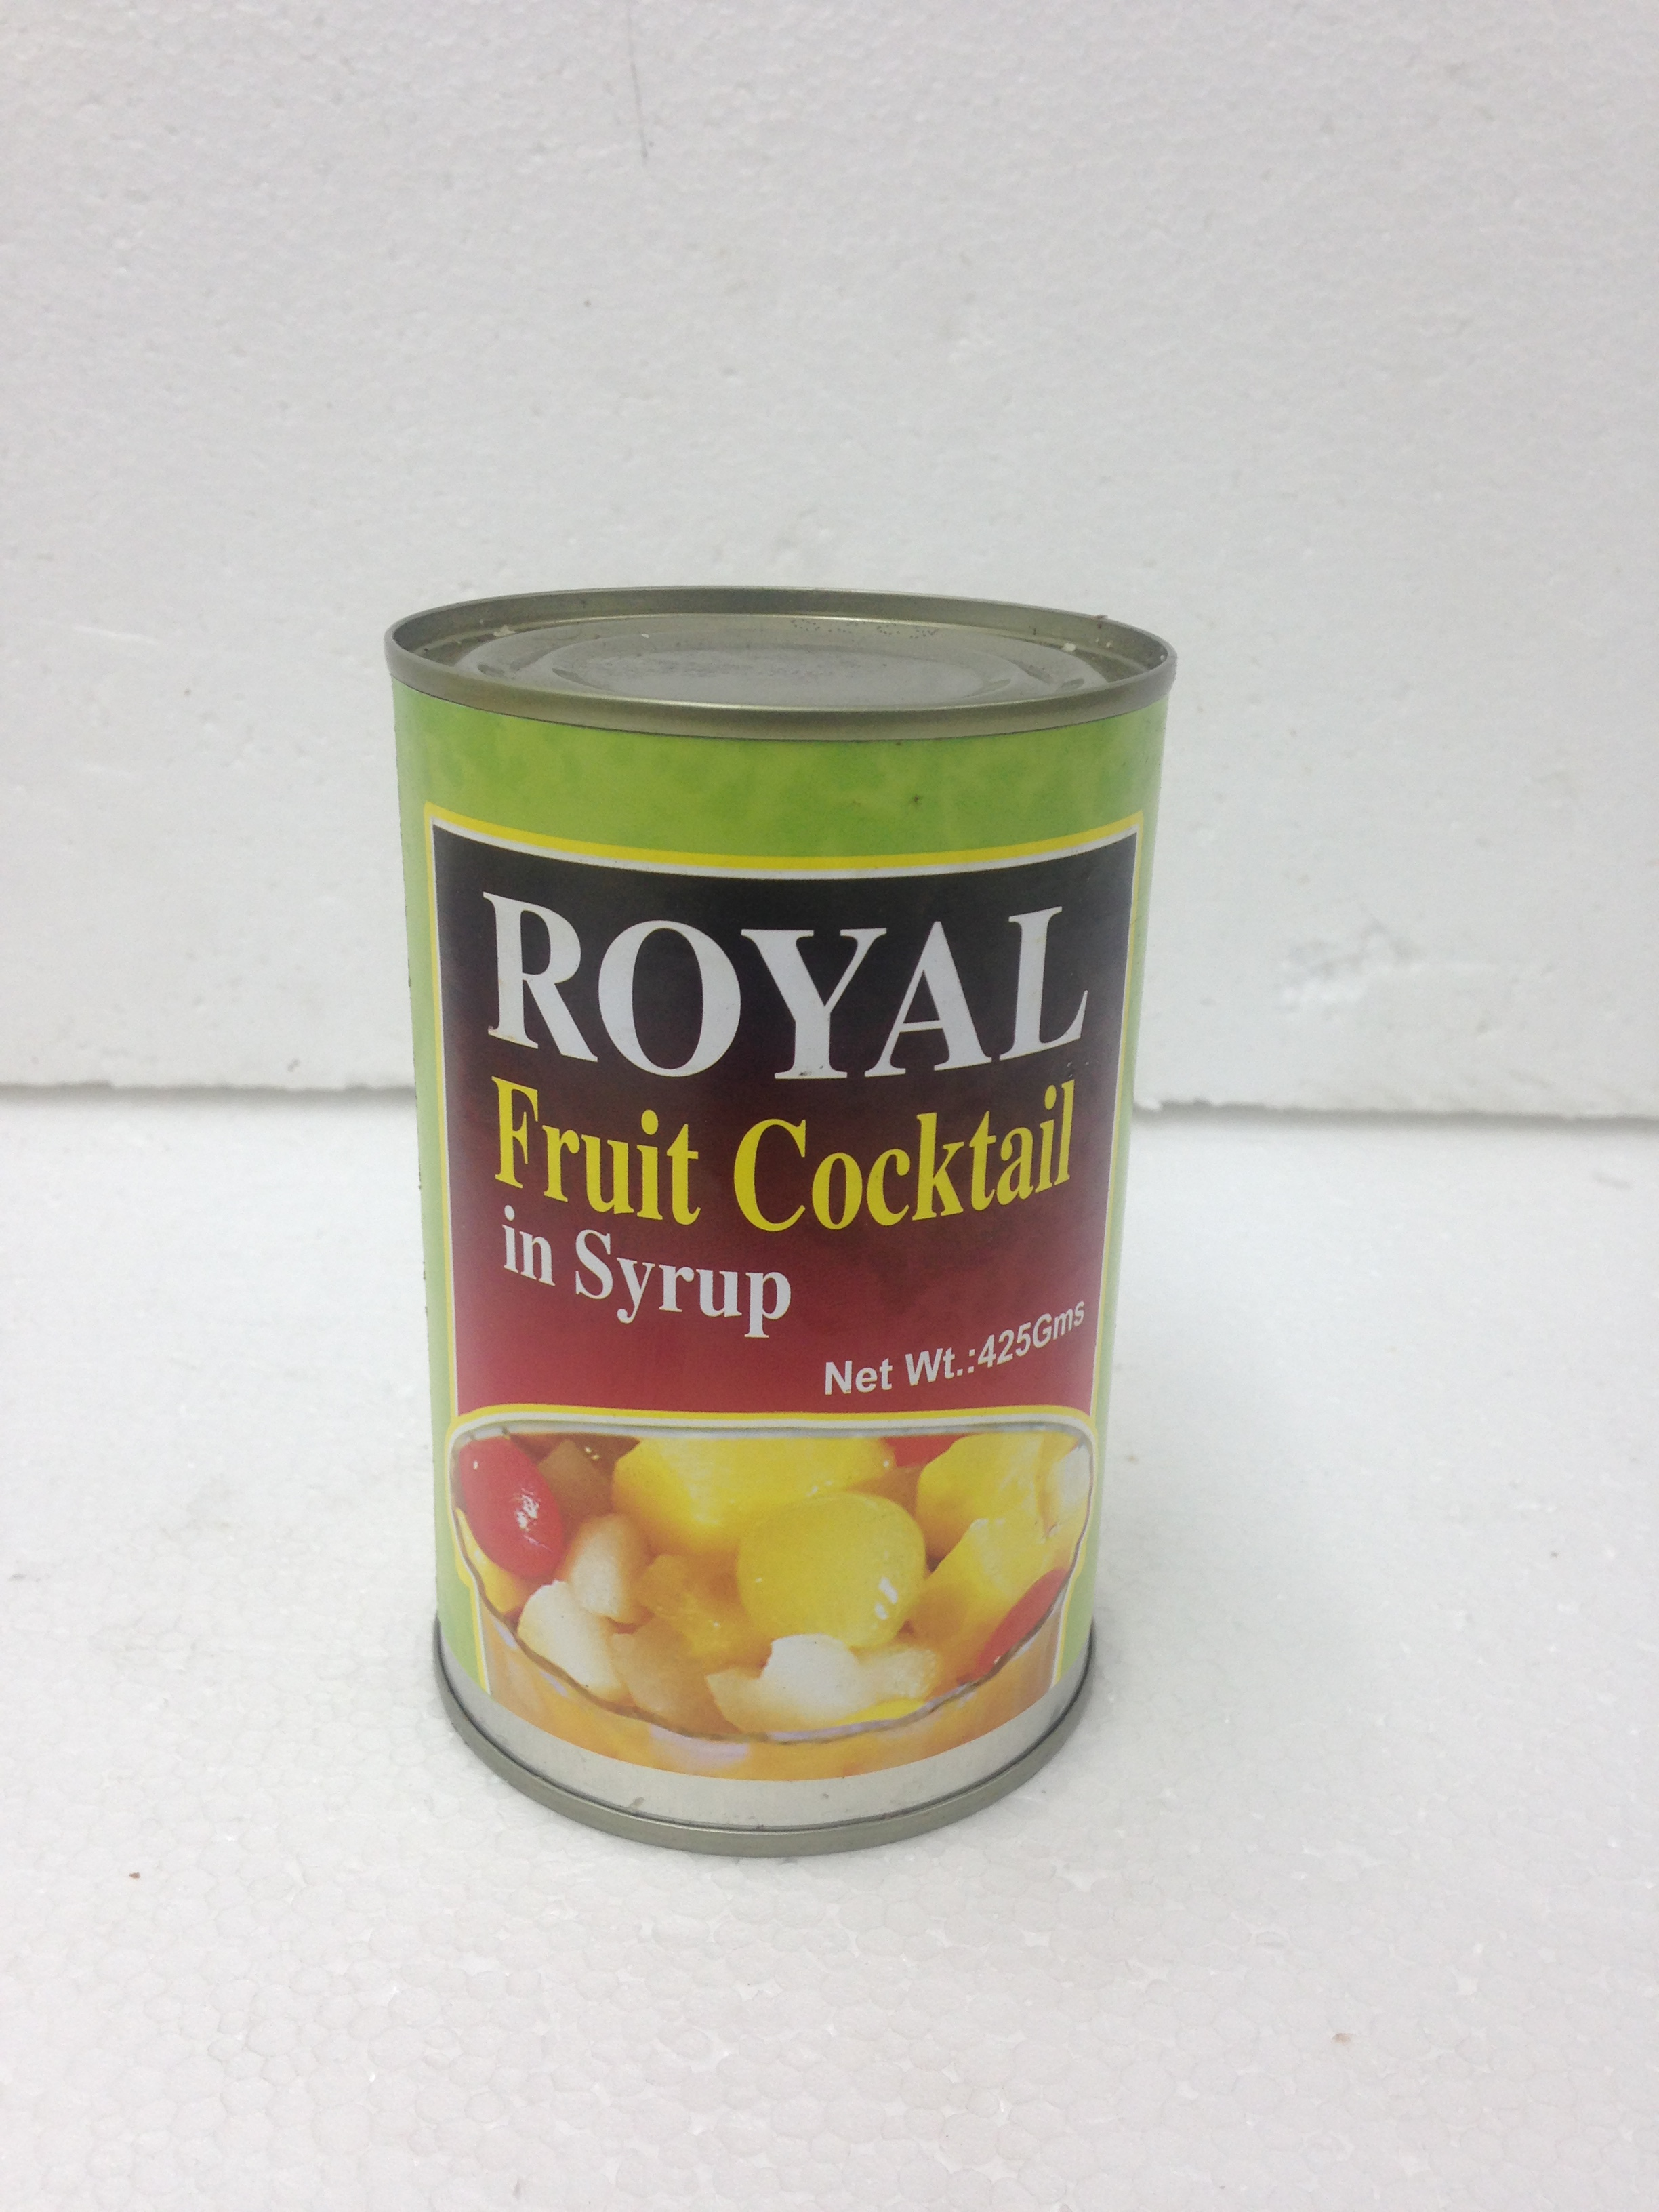 Royal Fruit Cocktail